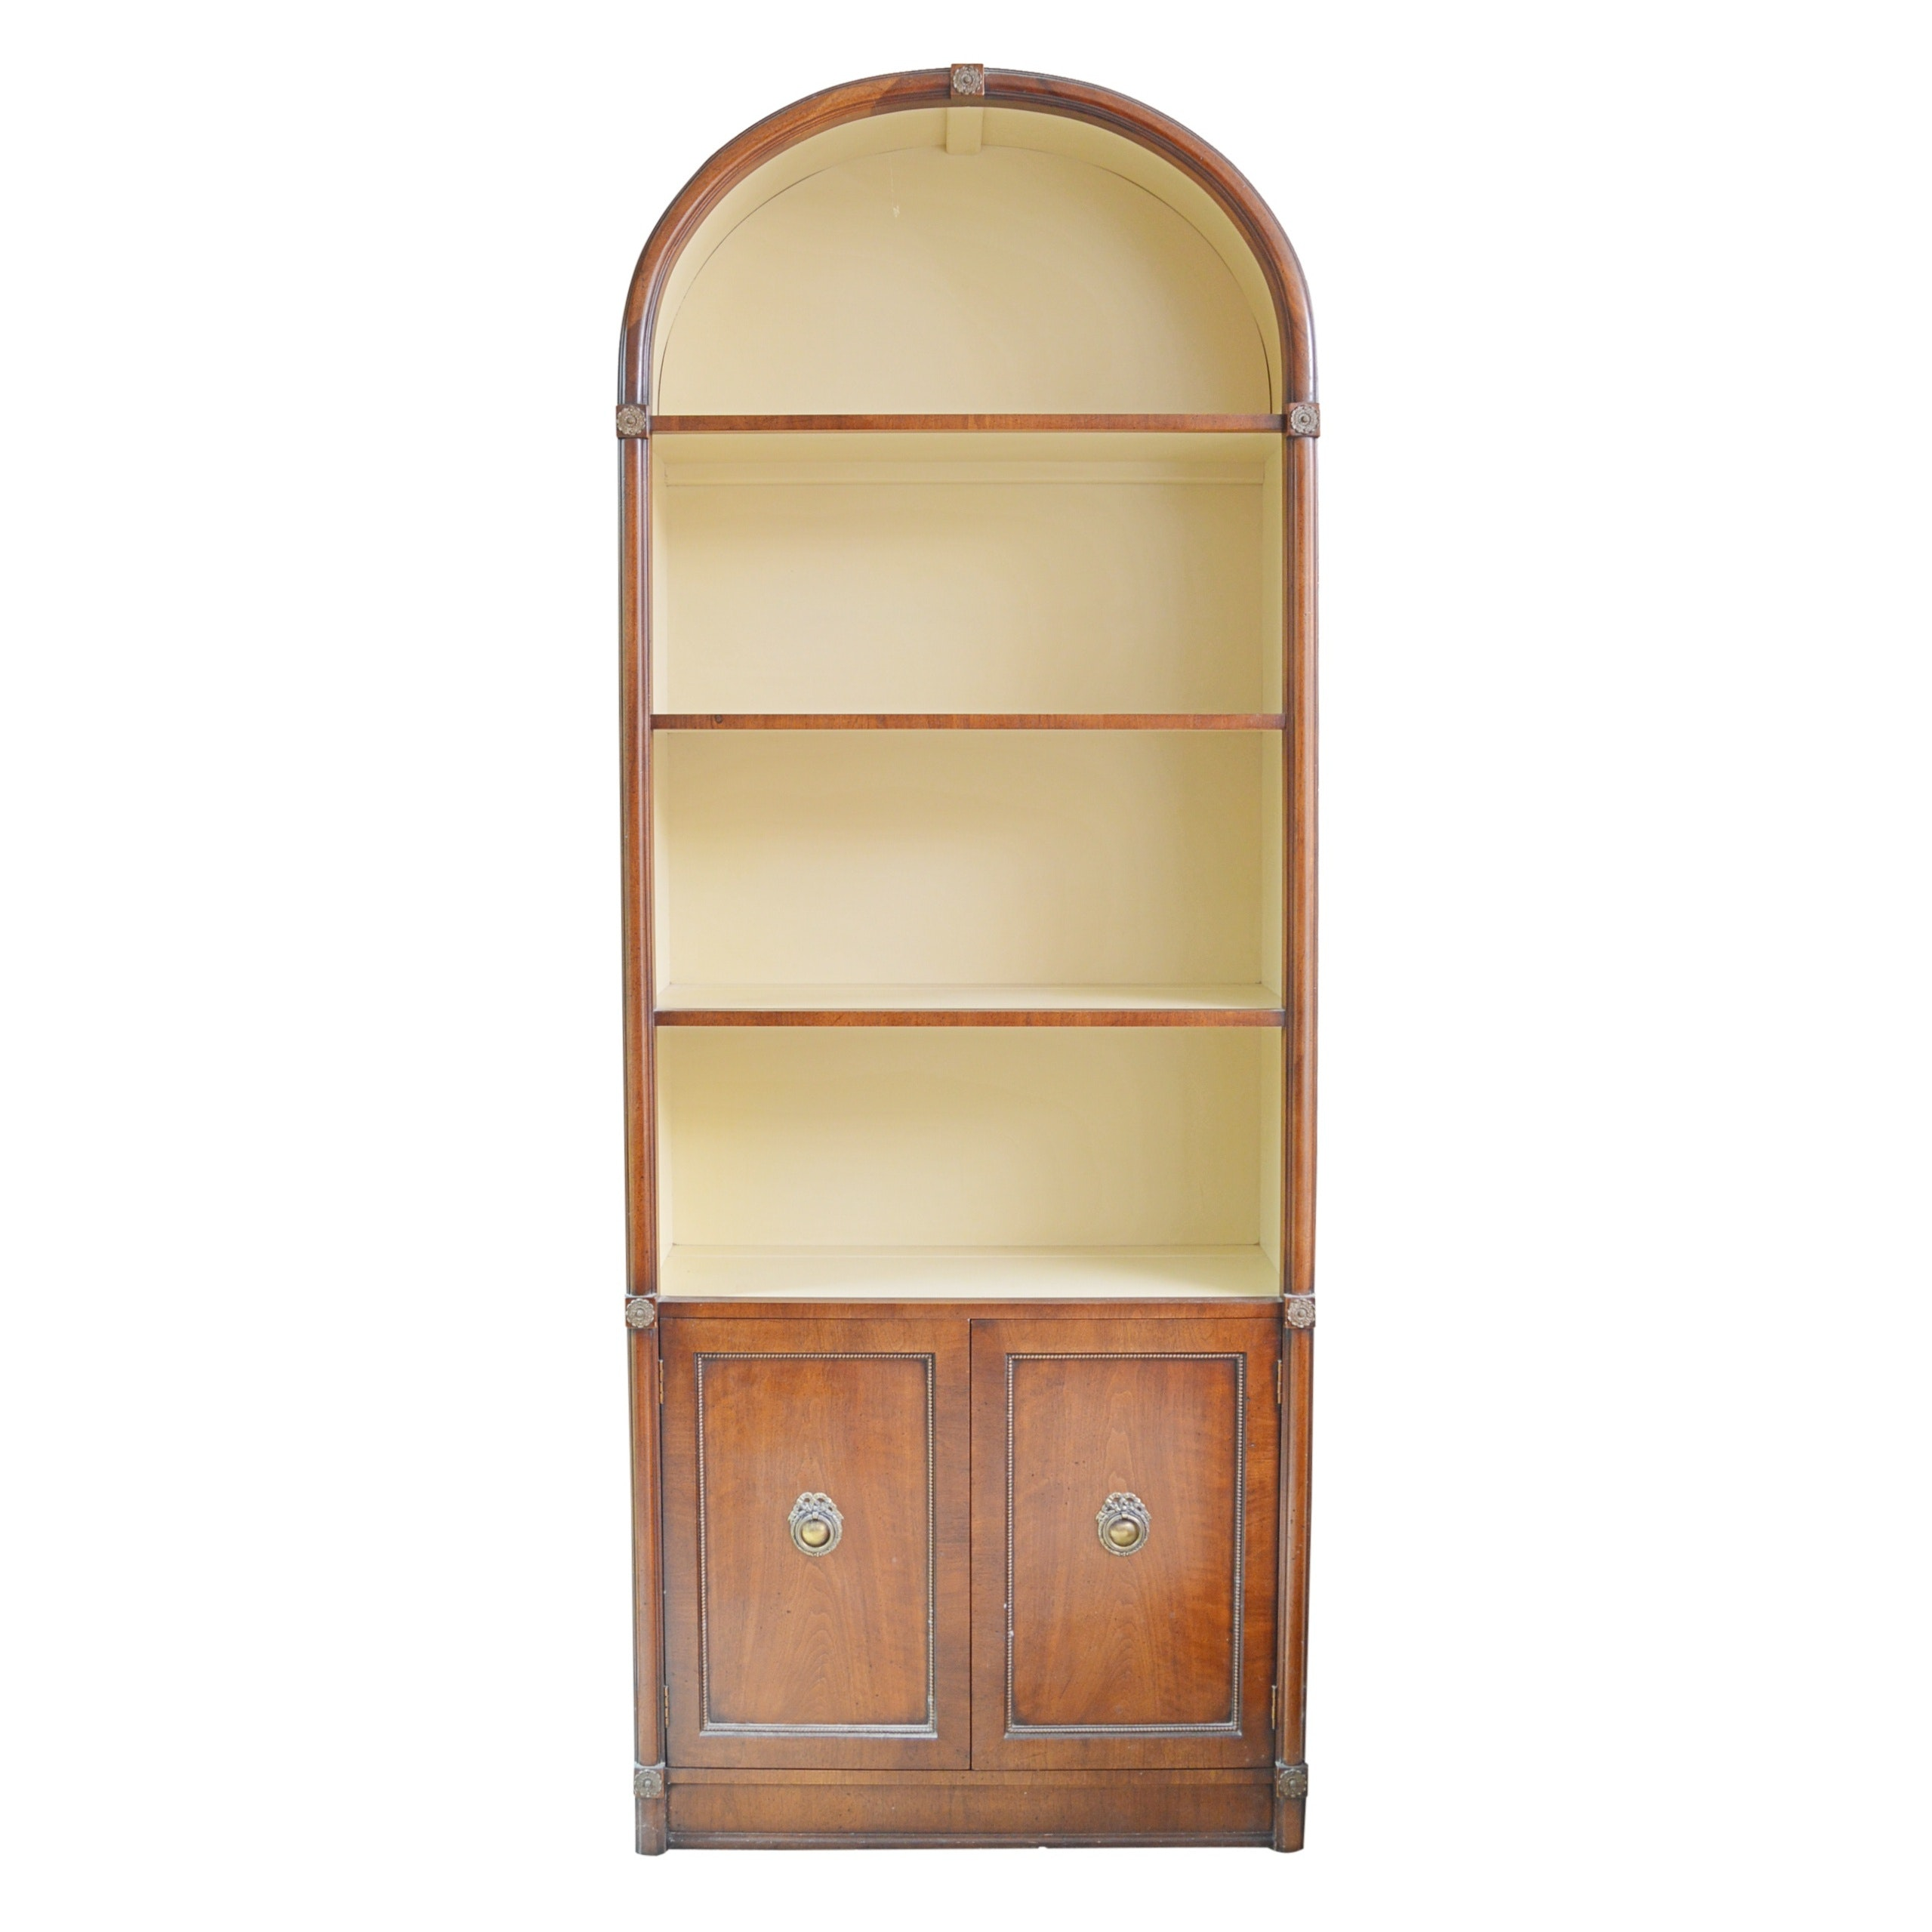 Transitional / Neoclassical Style Fruitwood Bookcase, Mid to Late 20th Century